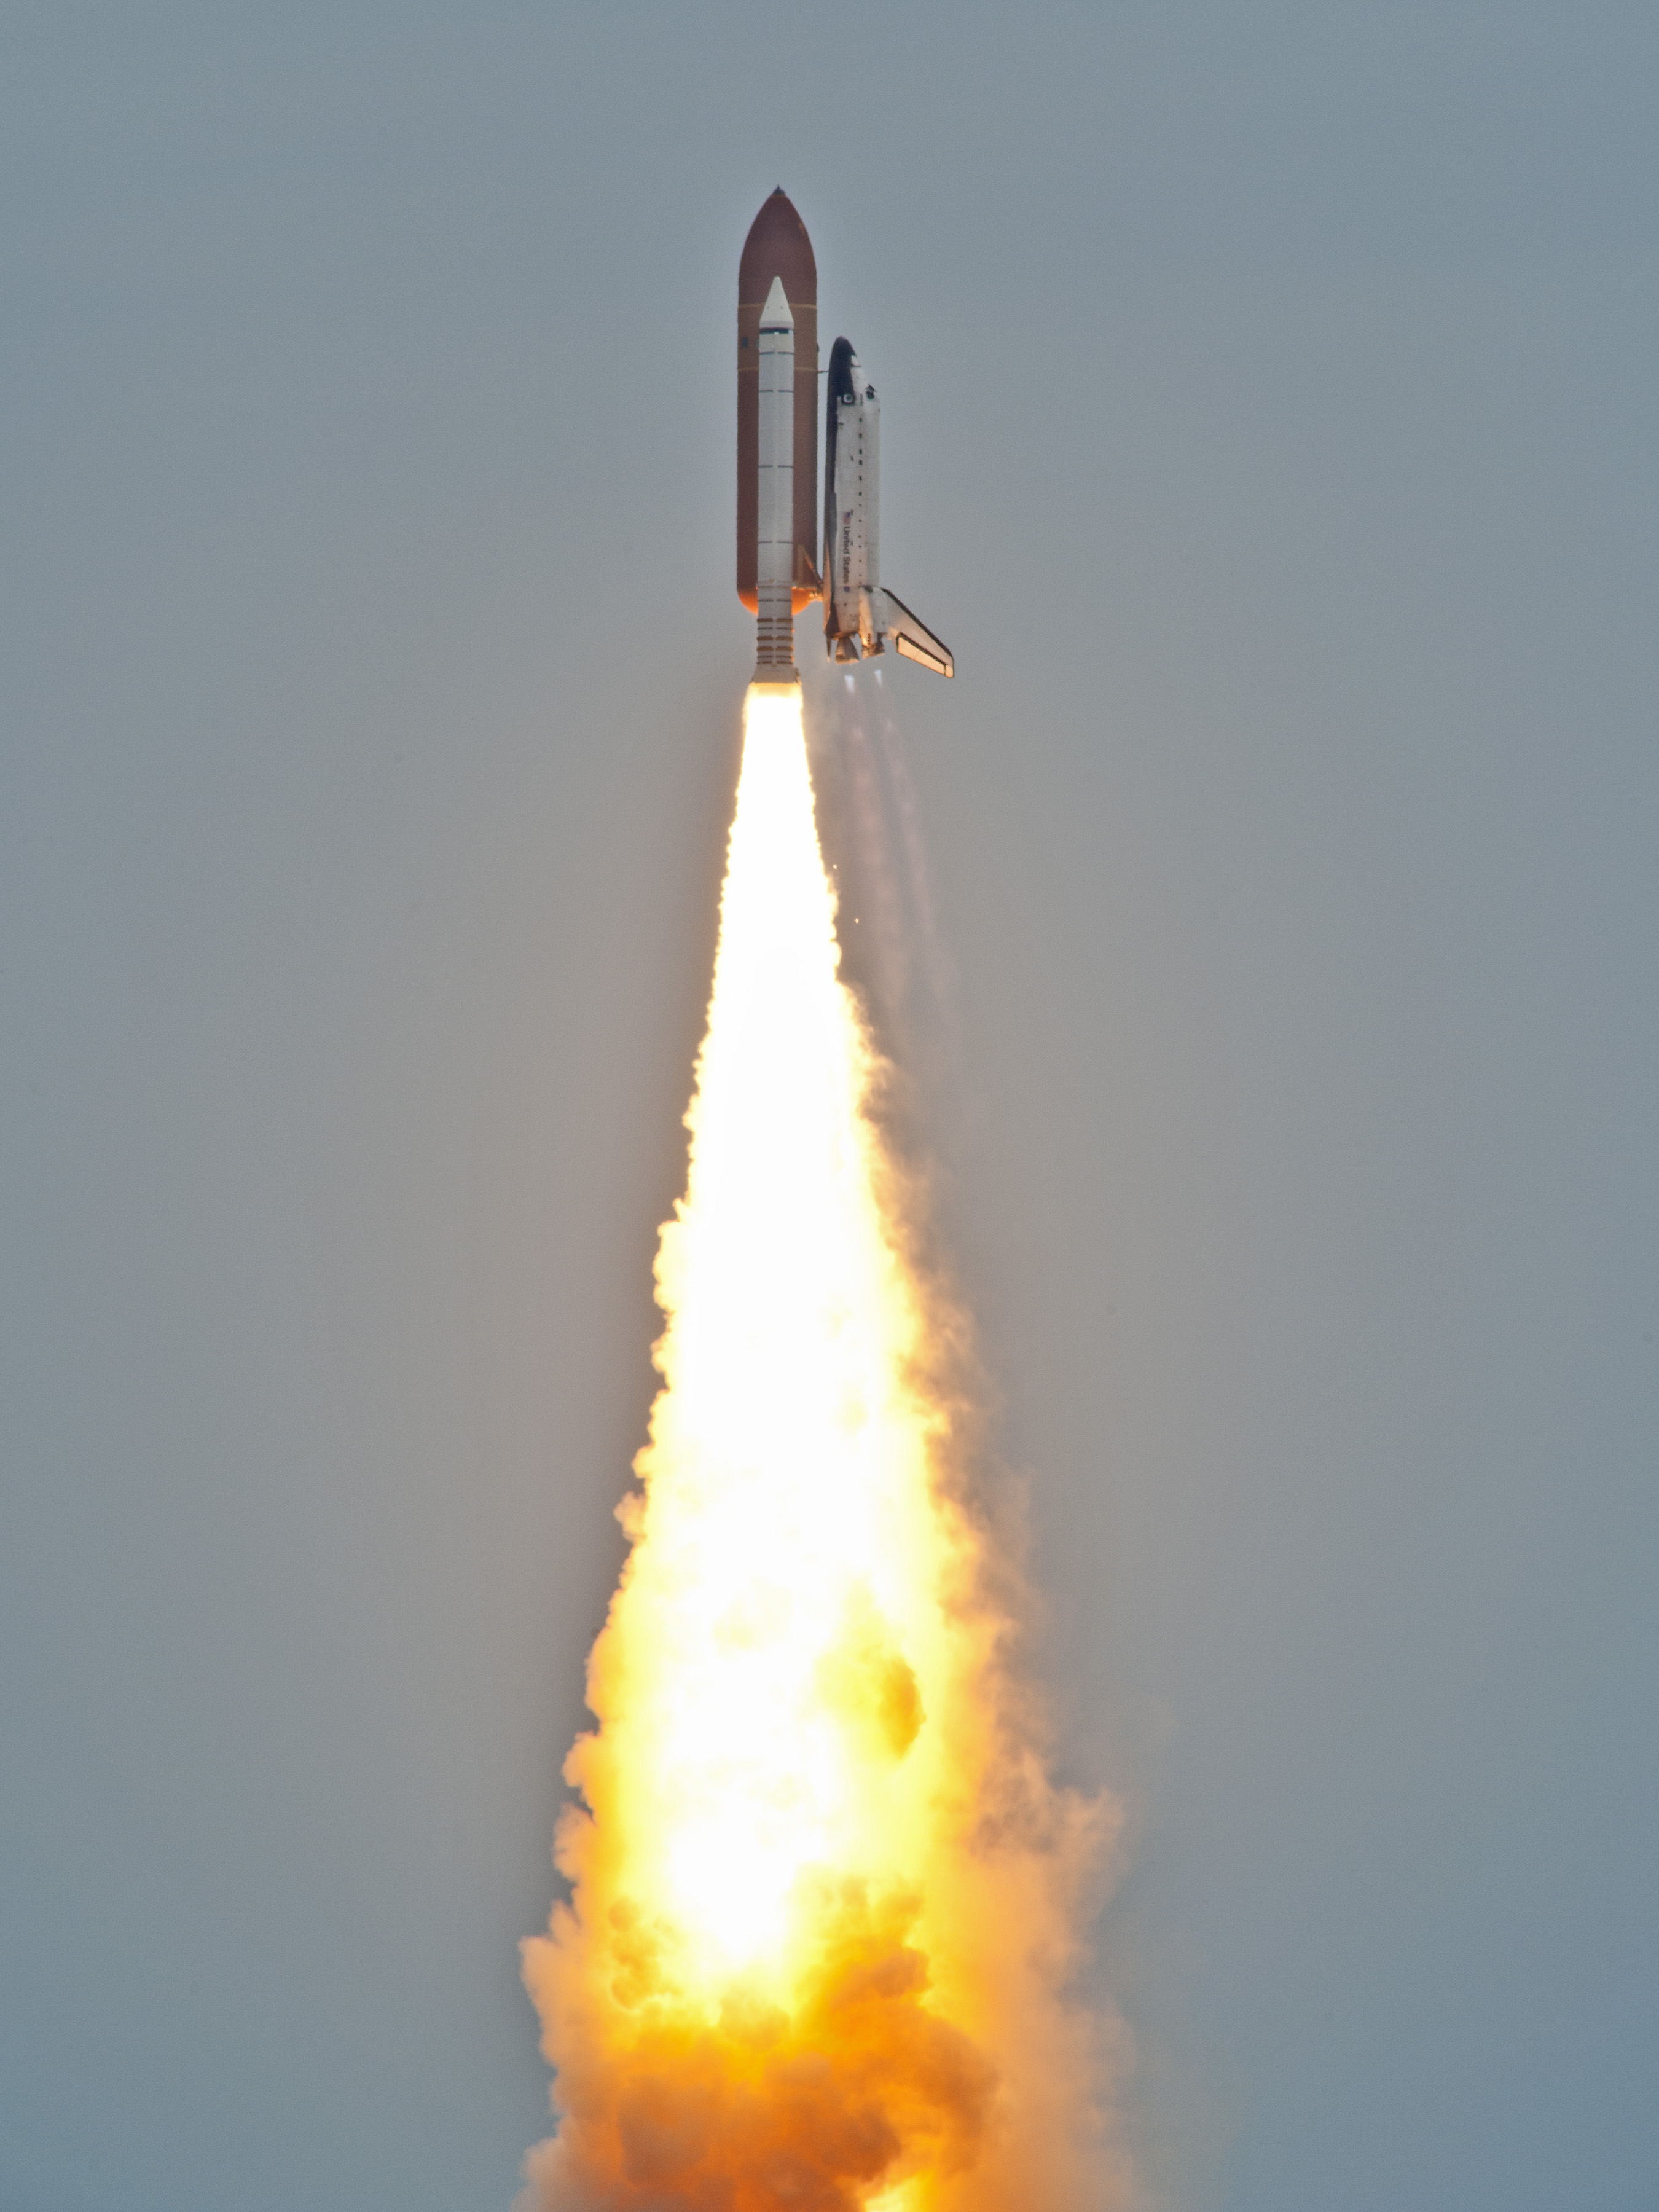 Launch of Atlantis on STS-135, the Last Space Shuttle Mission